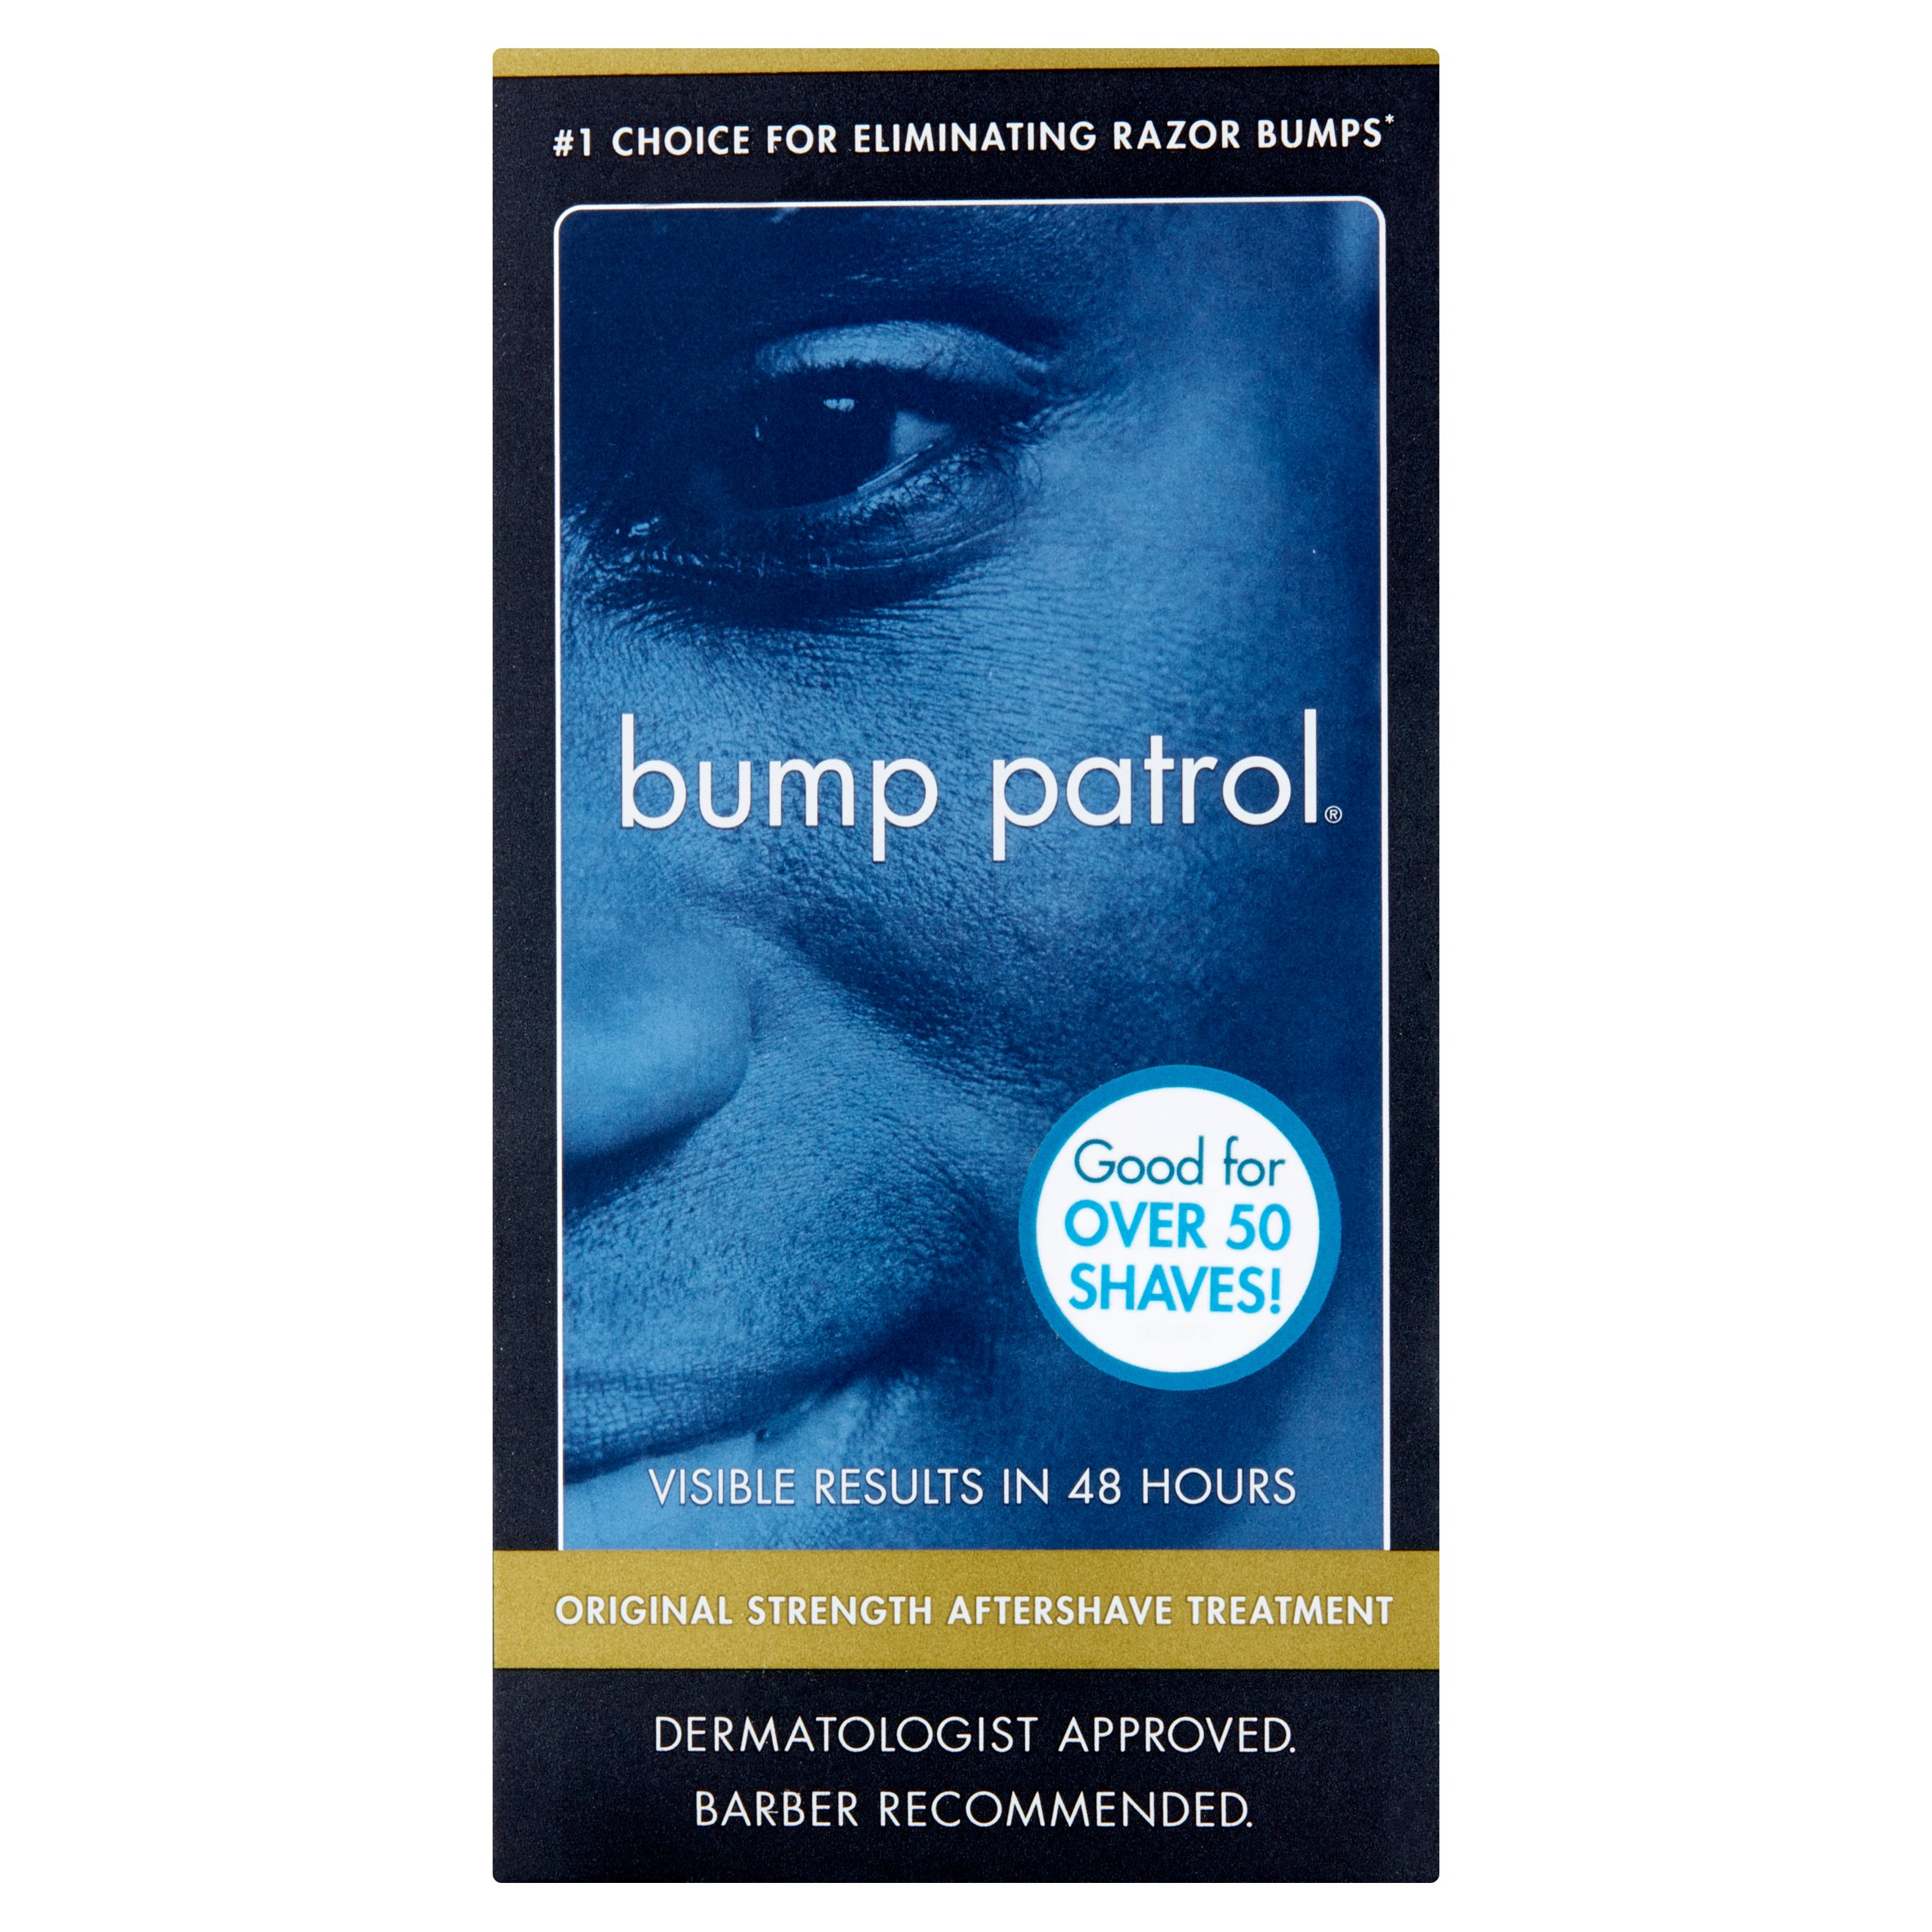 Bump Patrol Original Strength Aftershave Treatment, 2 fl oz